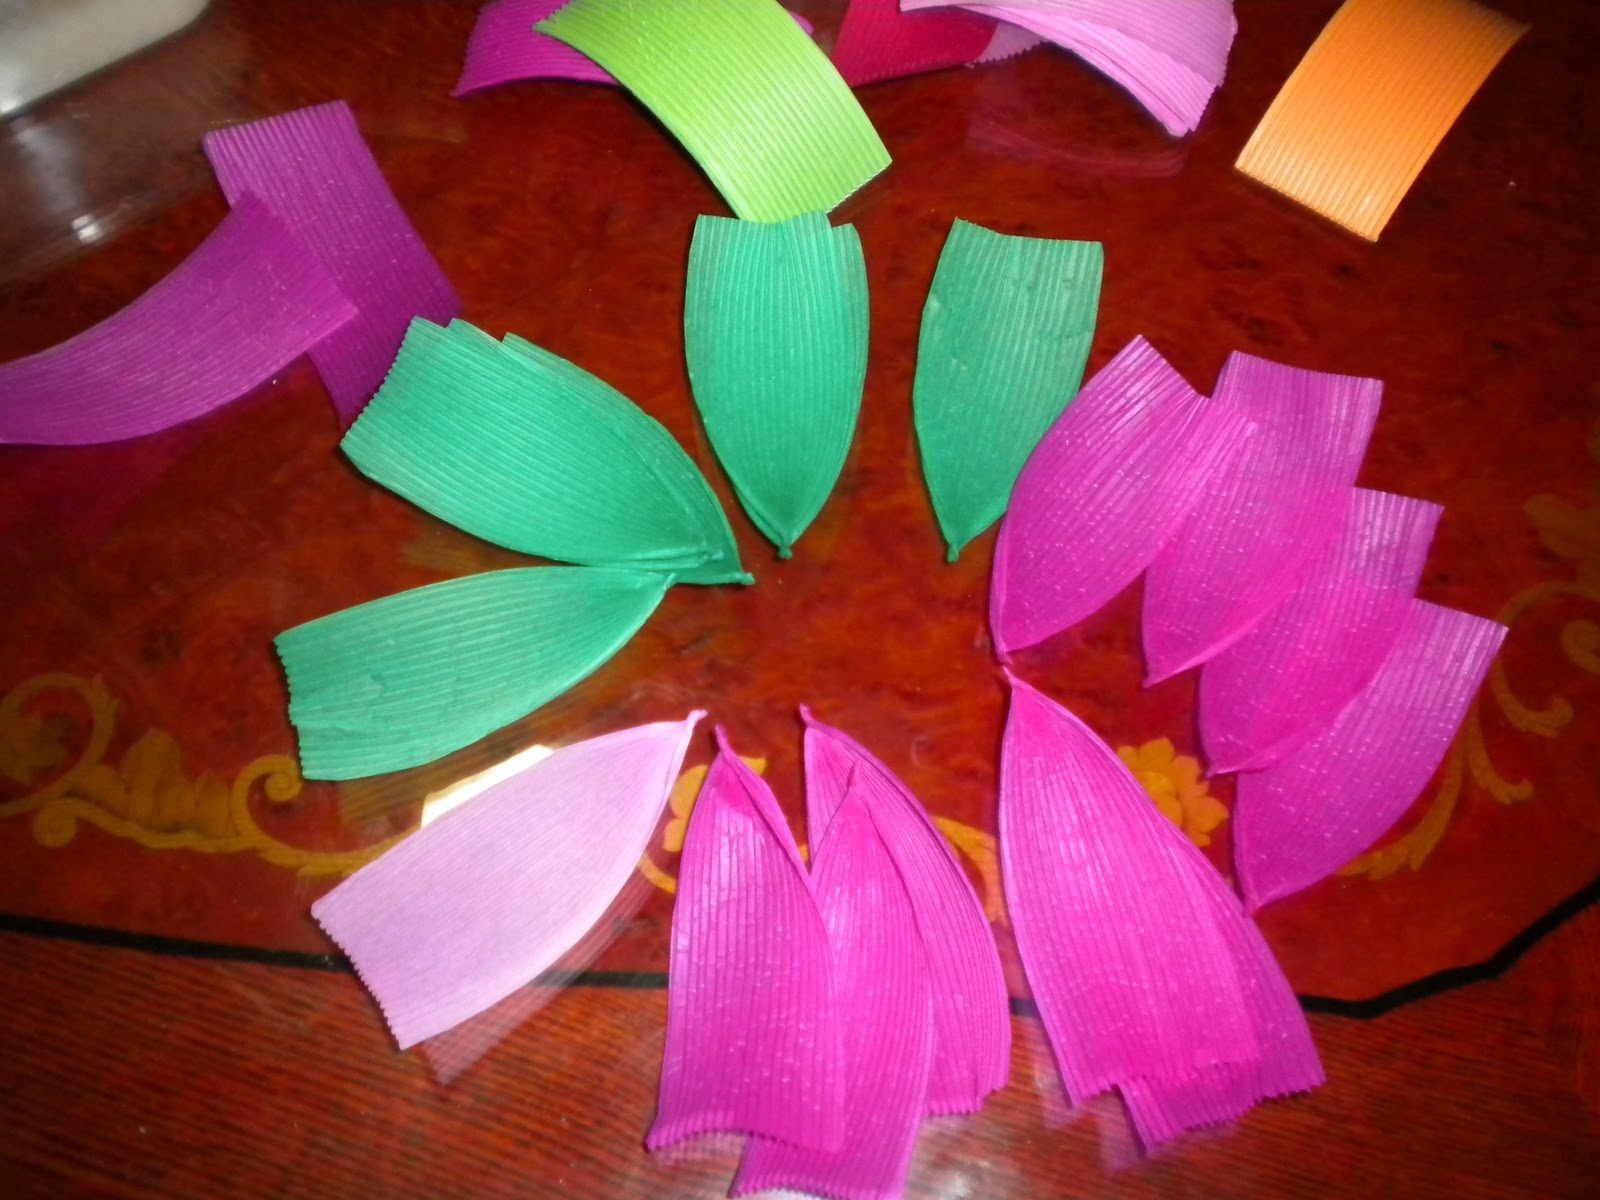 Buddhist temple stories lotus flower lantern making one end of each paper lotus petal twist with some glue into a tip mightylinksfo